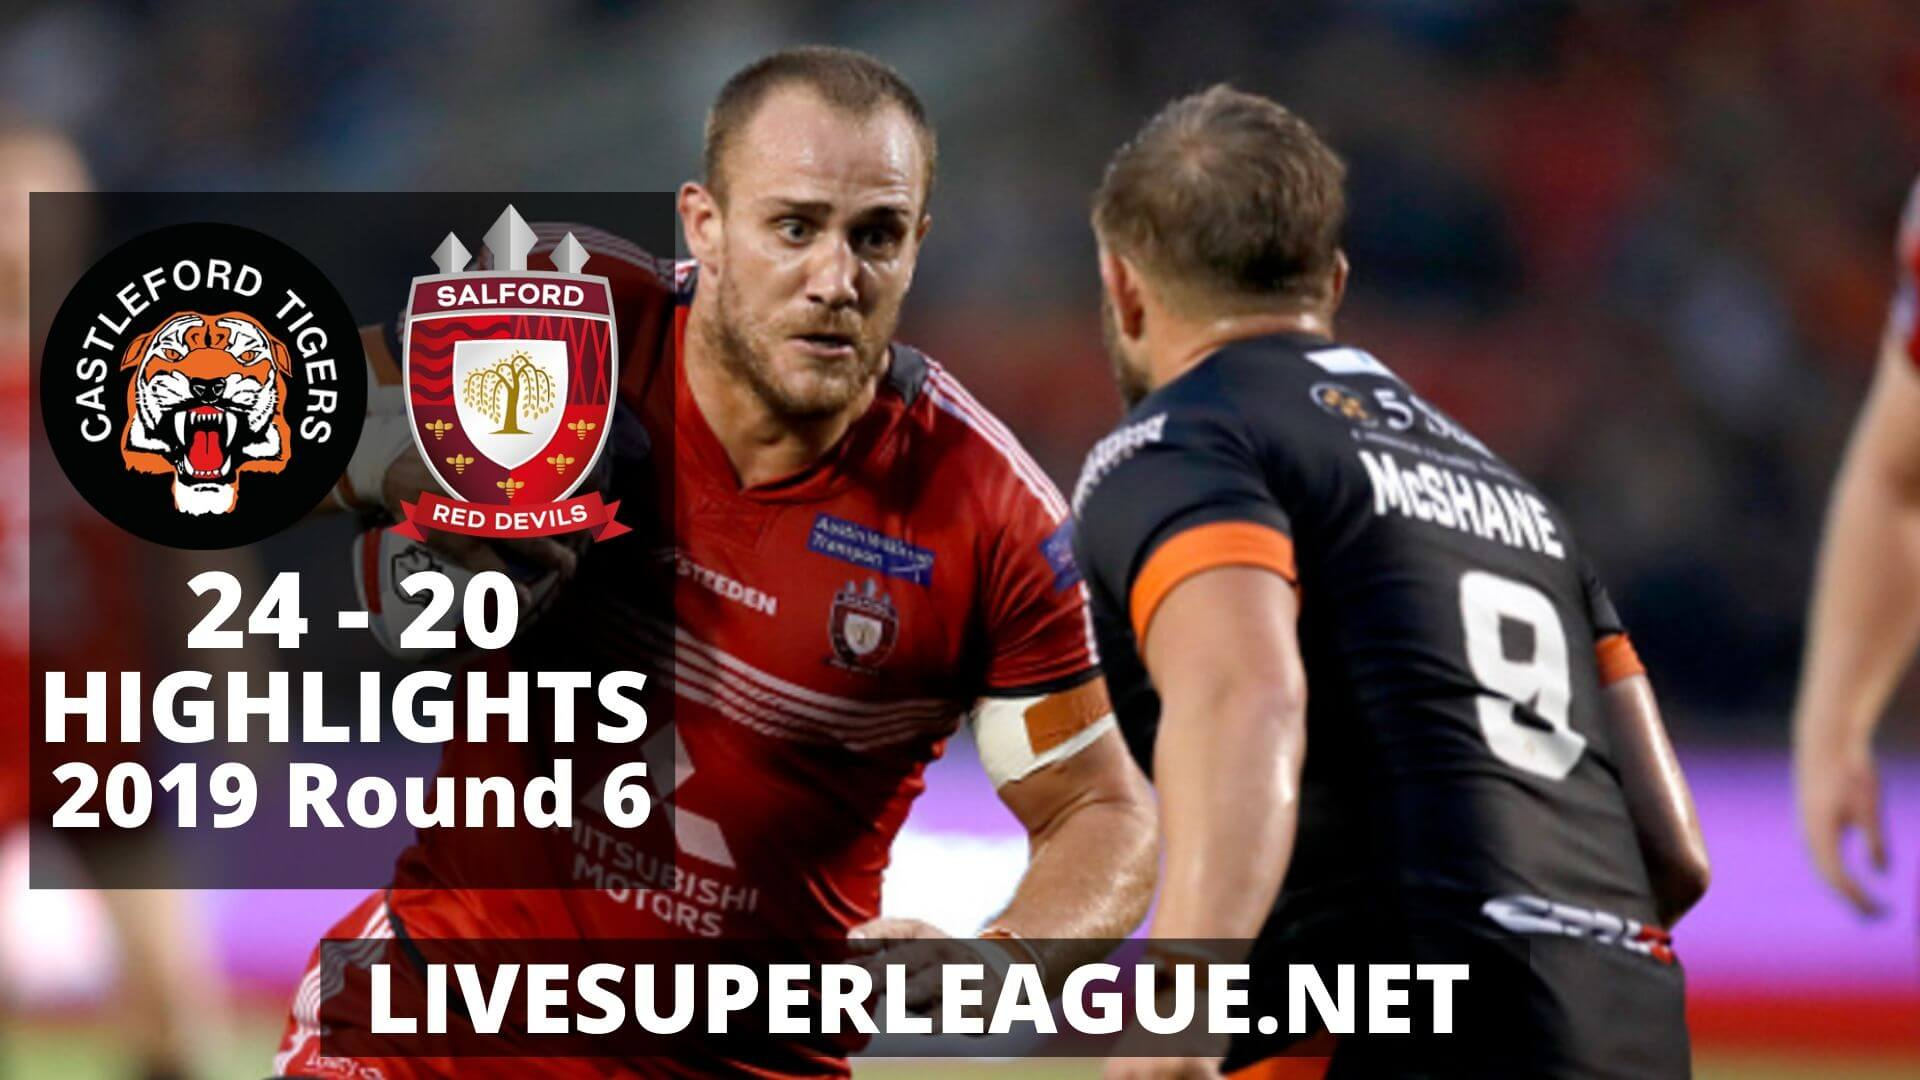 Castleford Tigers vs Salford Red Devils Highlights 2019 Round 6